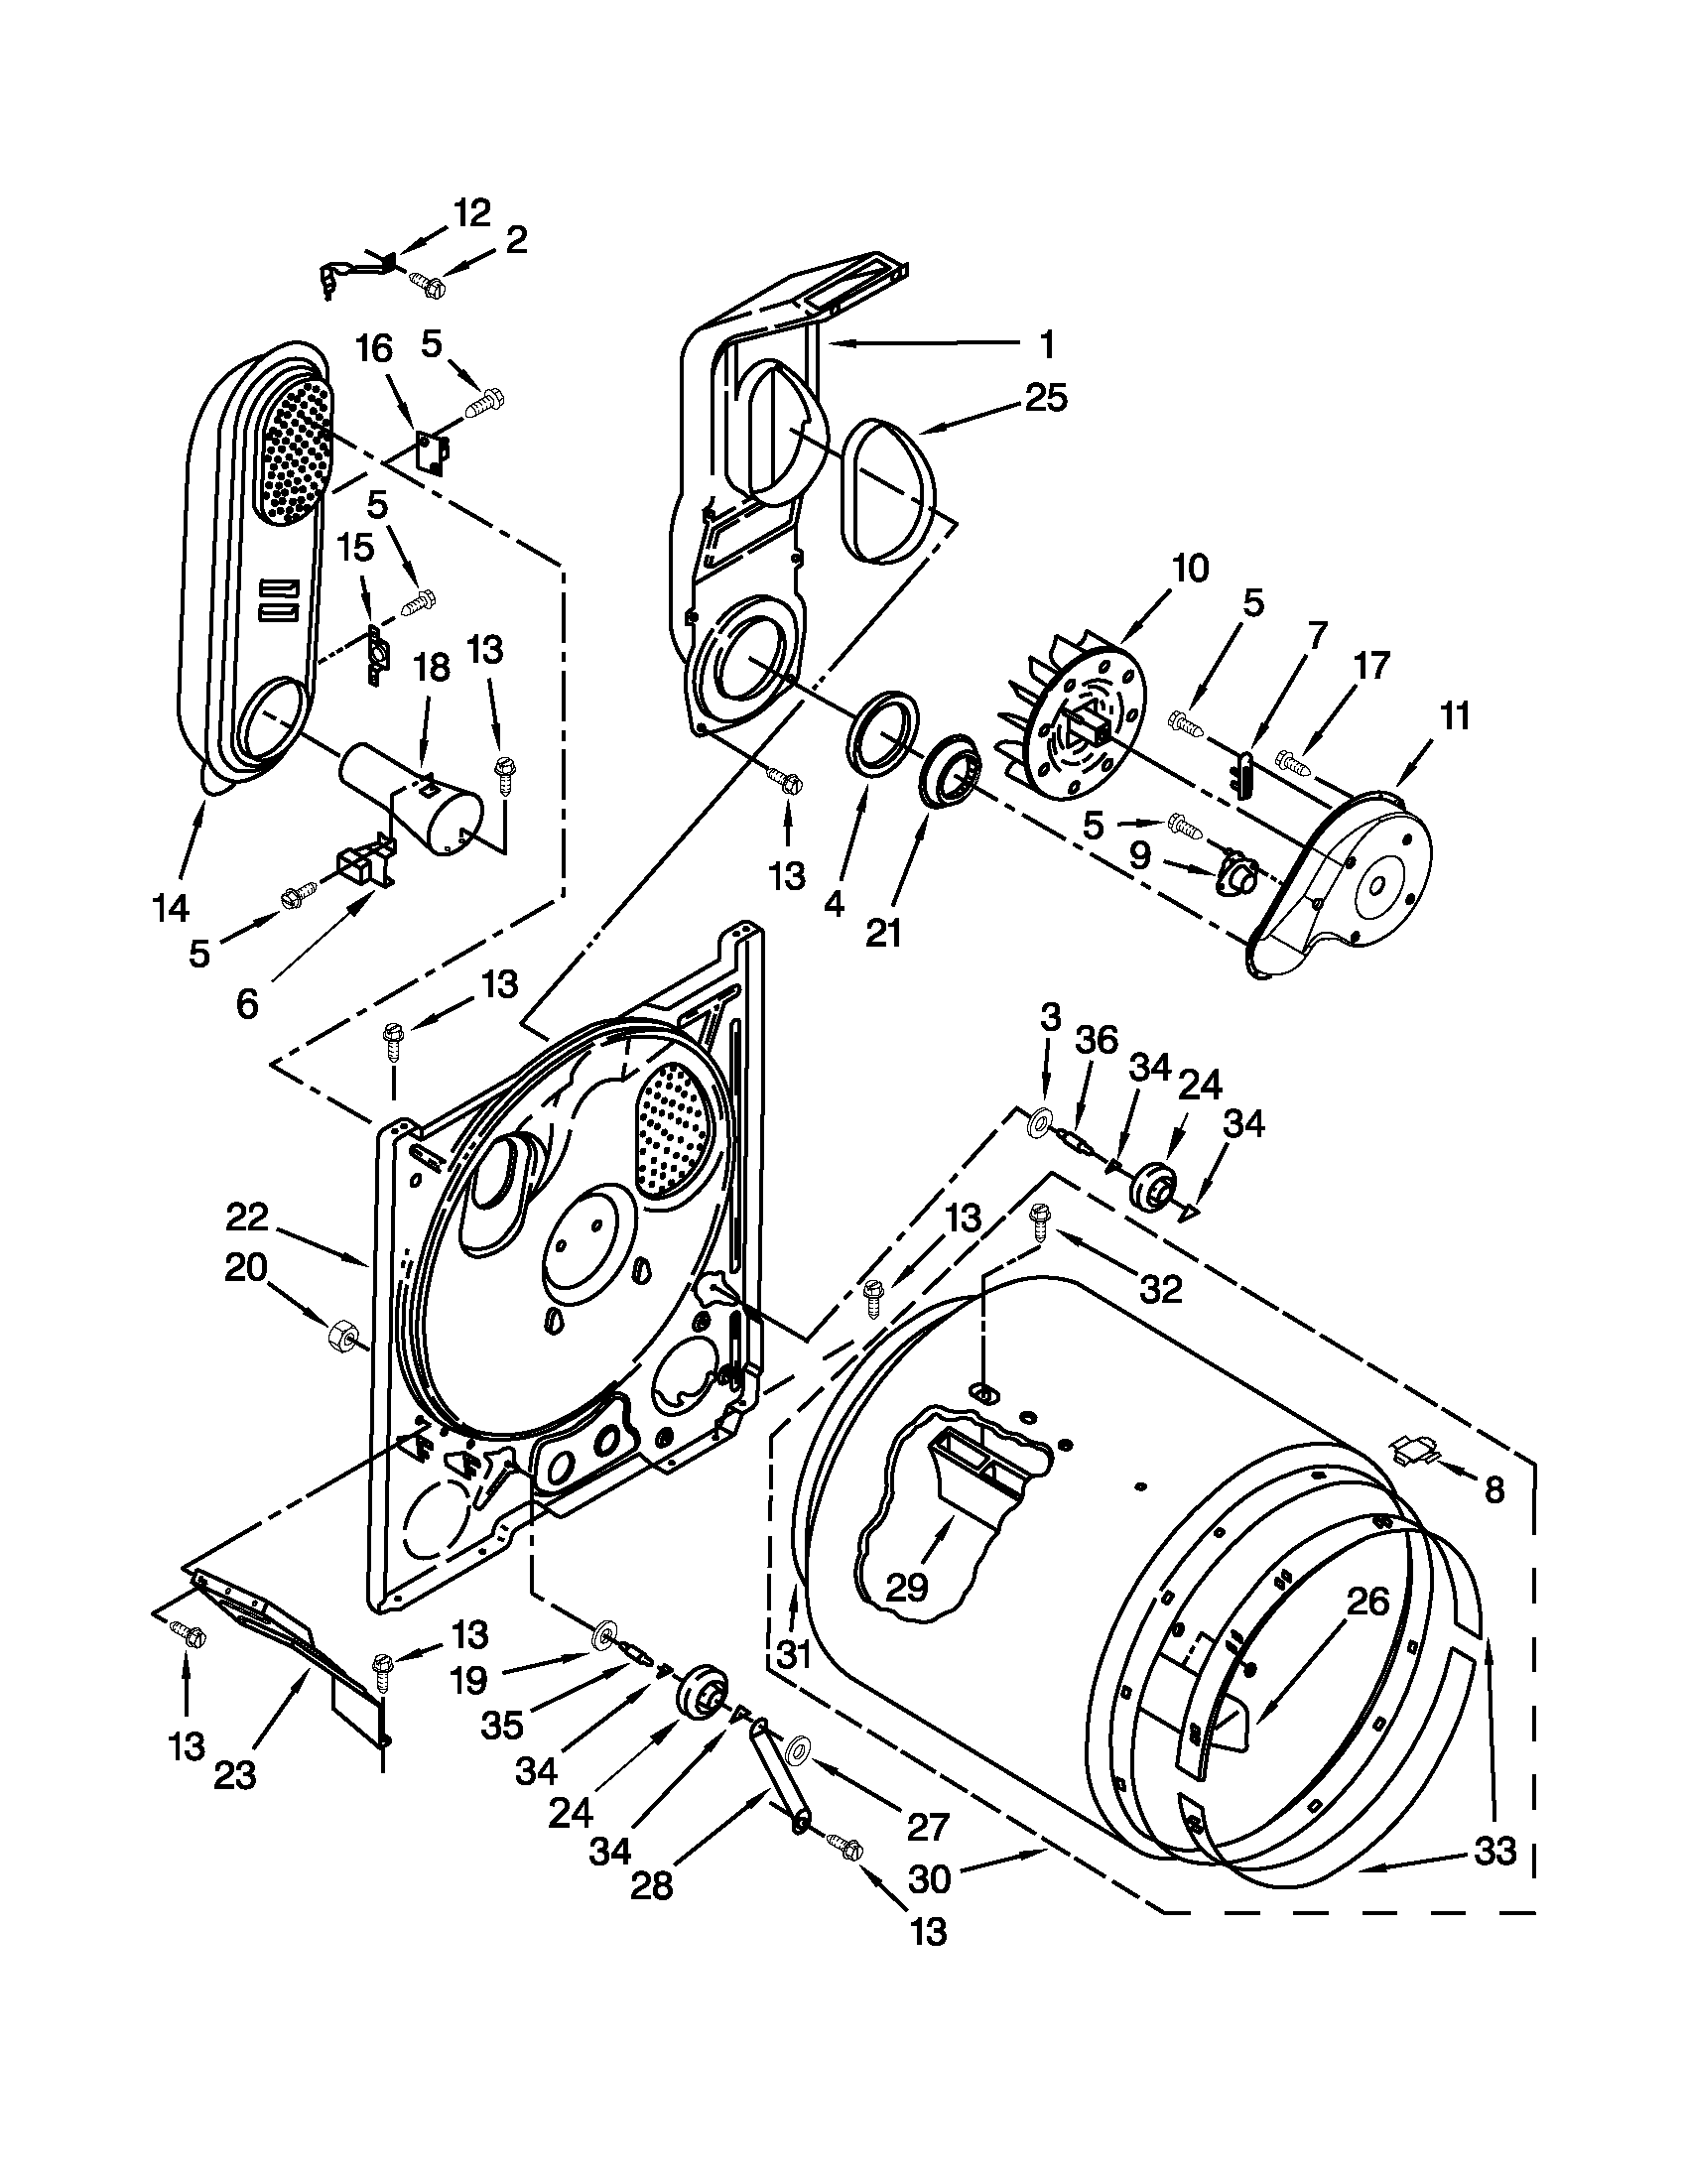 Amana model NGD4600YQ2 residential dryer genuine parts